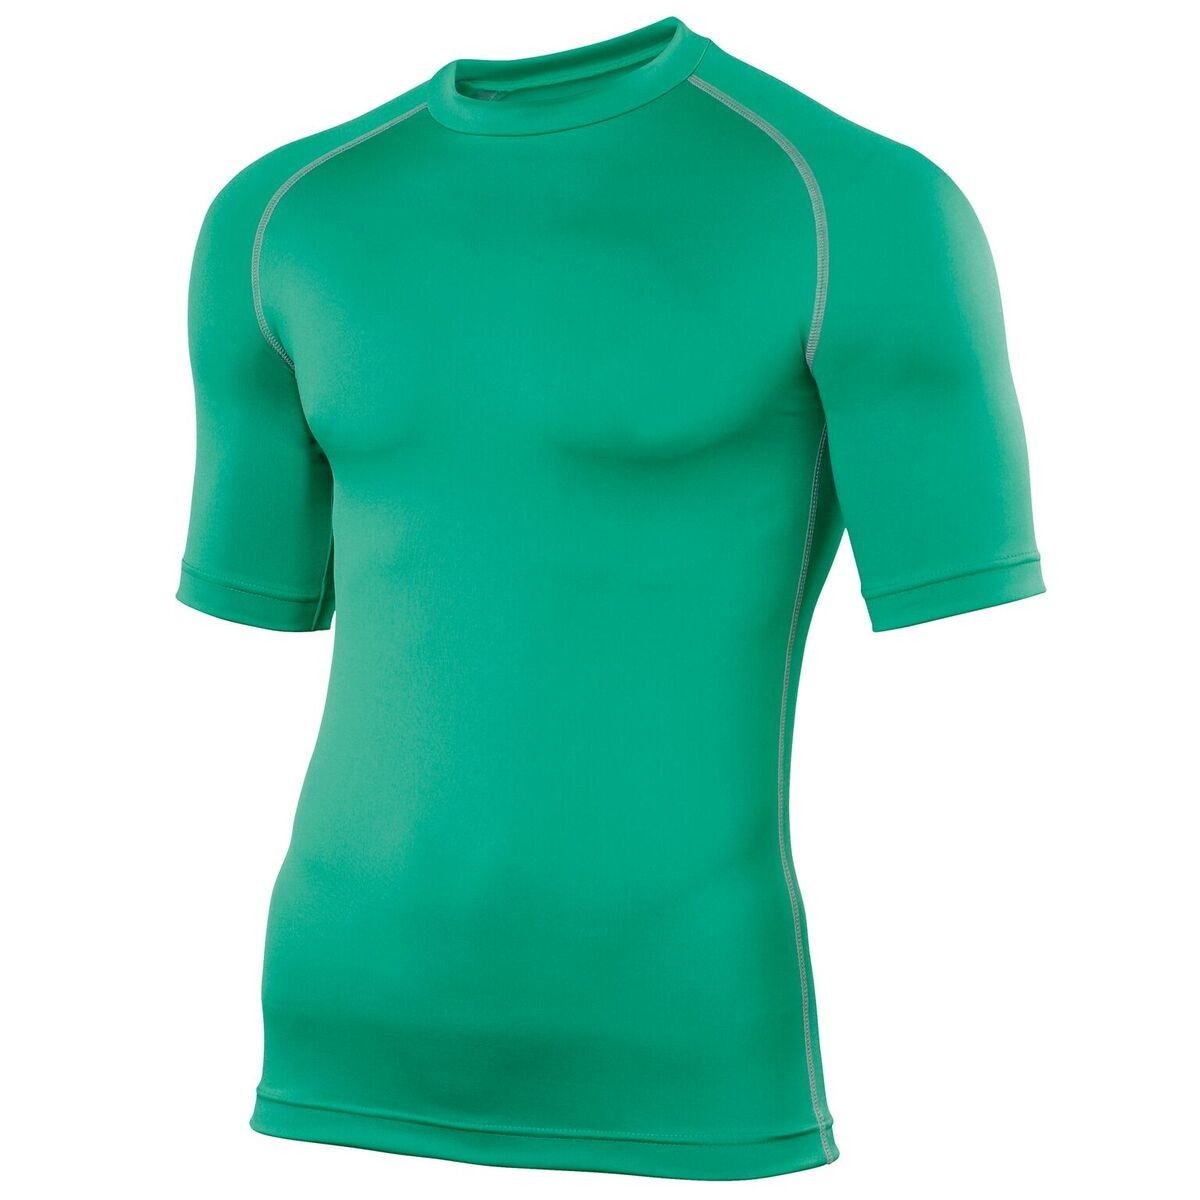 Chelmsford Athletics Club Adults Short Sleeve Baselayer Top